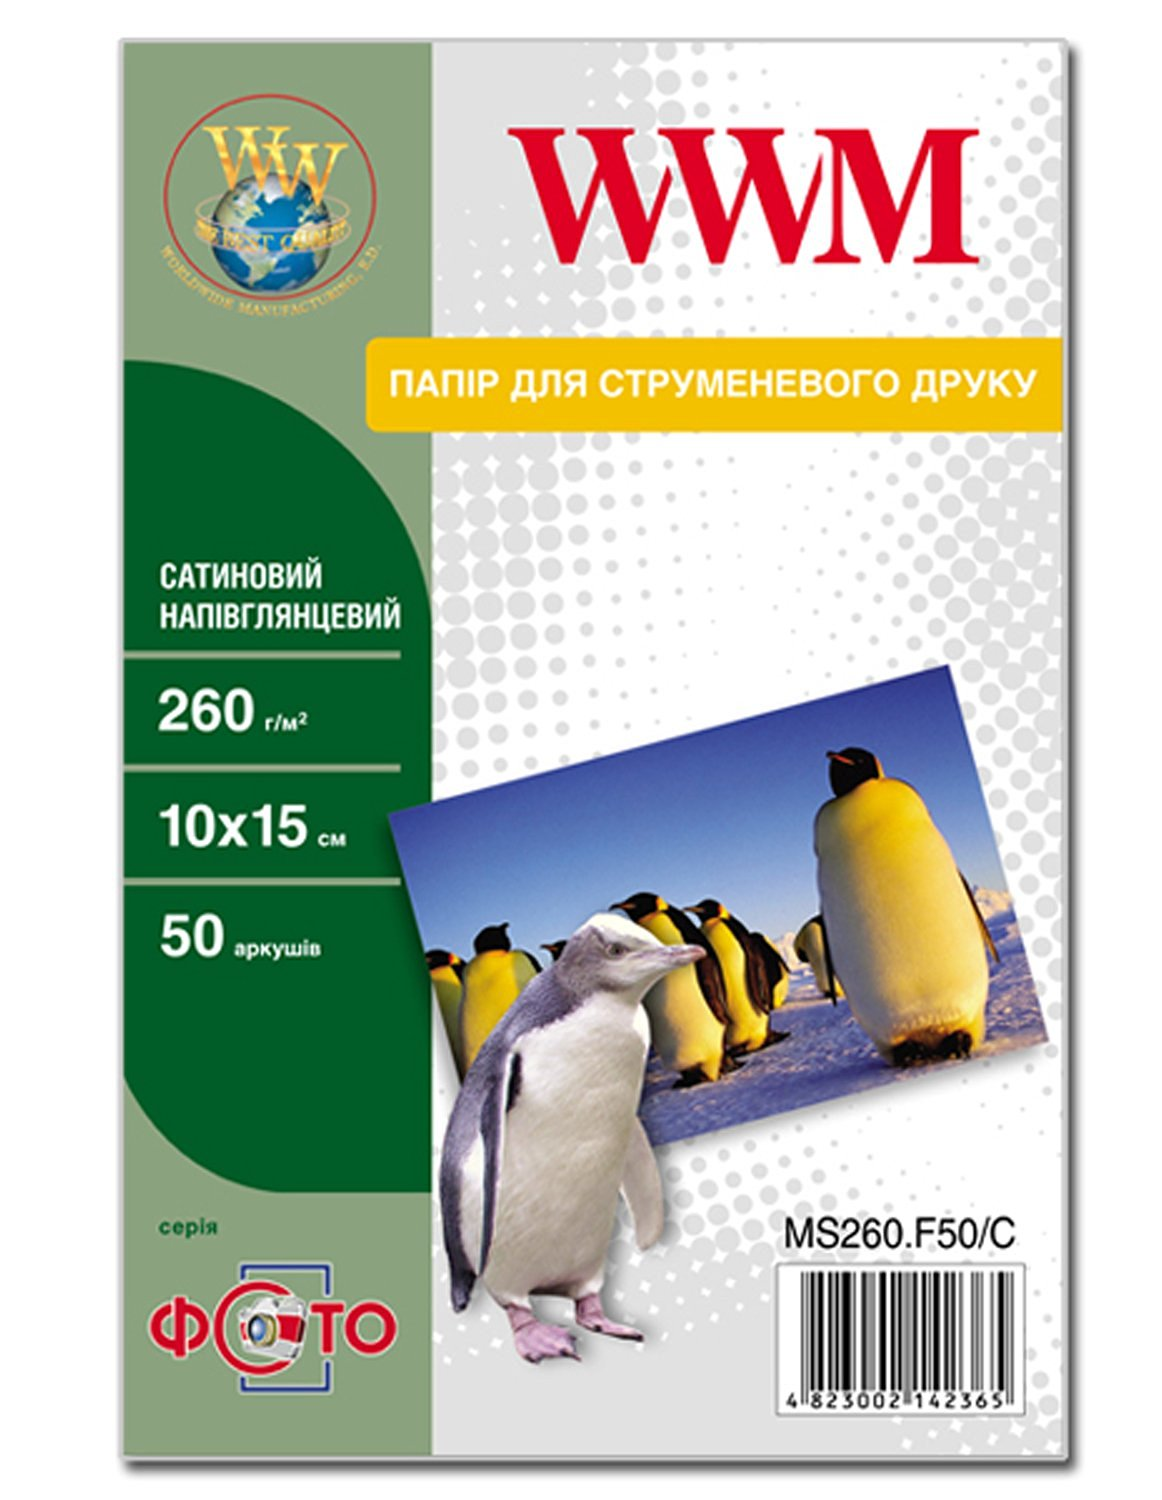 Photo Paper Satin Semi - Gloss, Glossy WWM, 4 x 6 Inches, 50 Sheets (MS260.F50/C); High Quality, For Any Desktop Inkjet Printers, Excellent White Inkjet Printer Photo Paper for Printing Color Images, Satin Semi - Glossy Coated, Pack of 50, 260gsm, Whiteness 96%, Brightness 115% on 457nm, Size 4x6